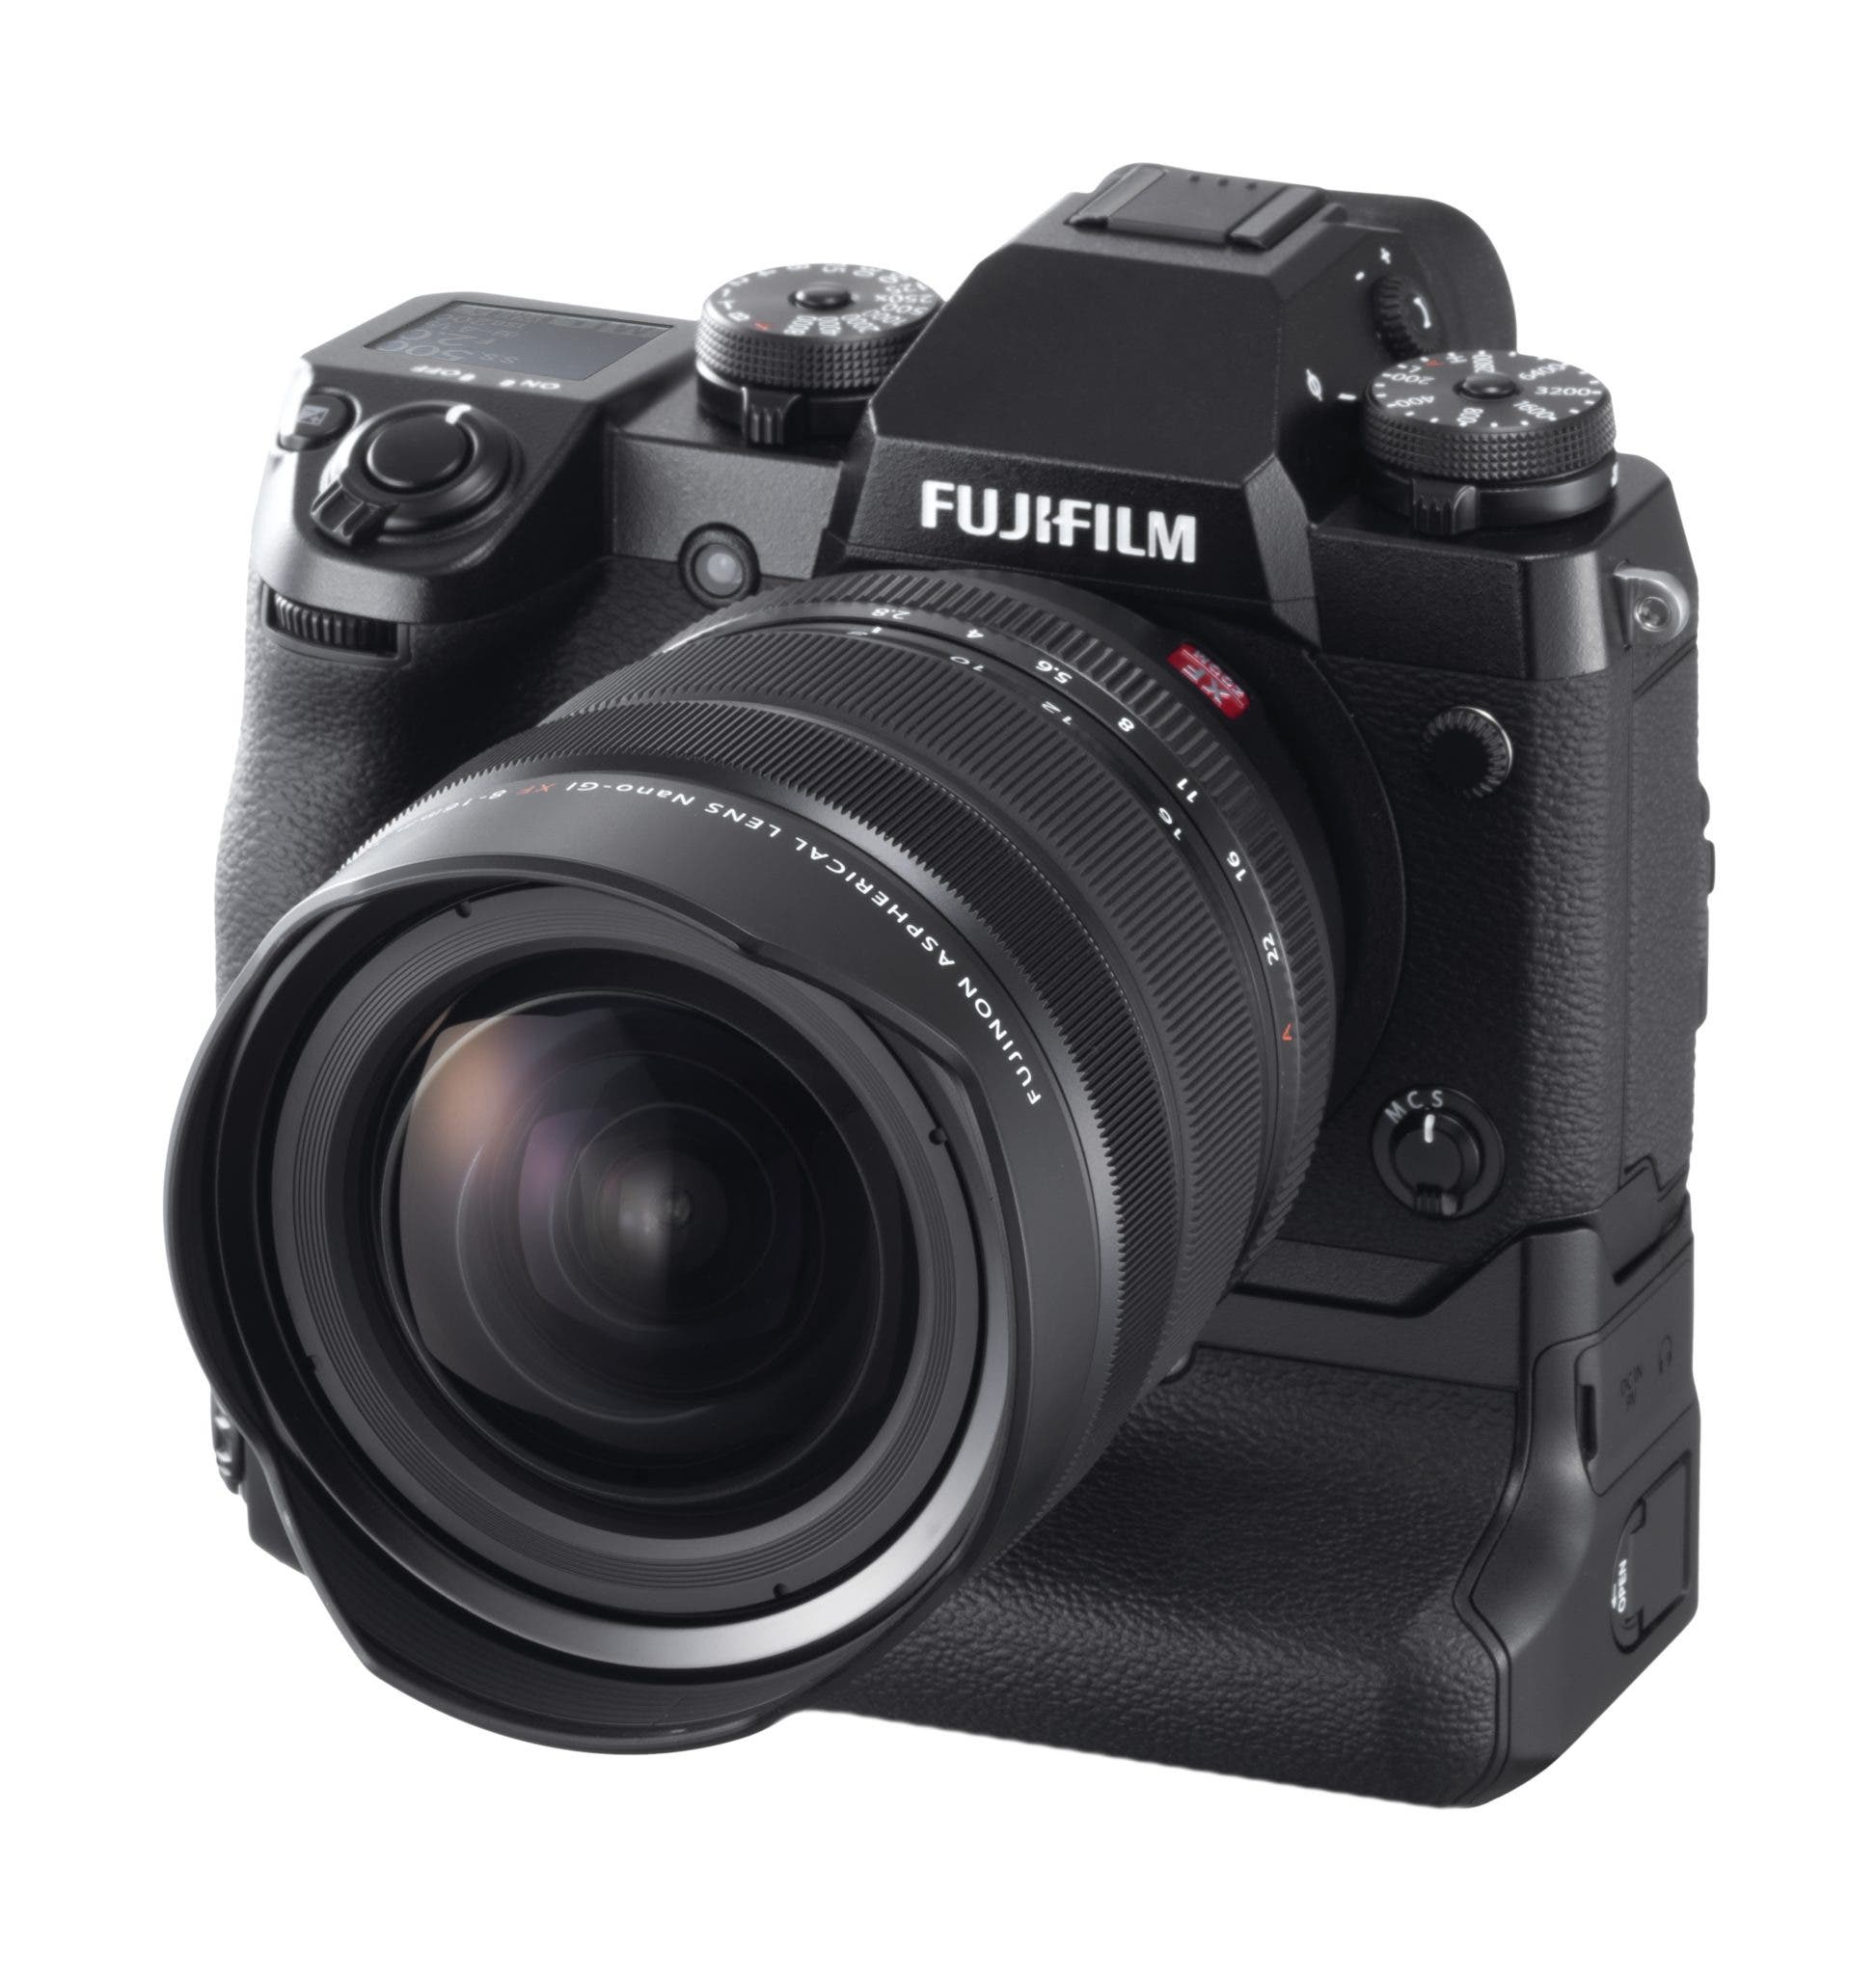 The Fujifilm 8-16mm F2.8 R LM WR Lens Is Here. And So Is Much More!